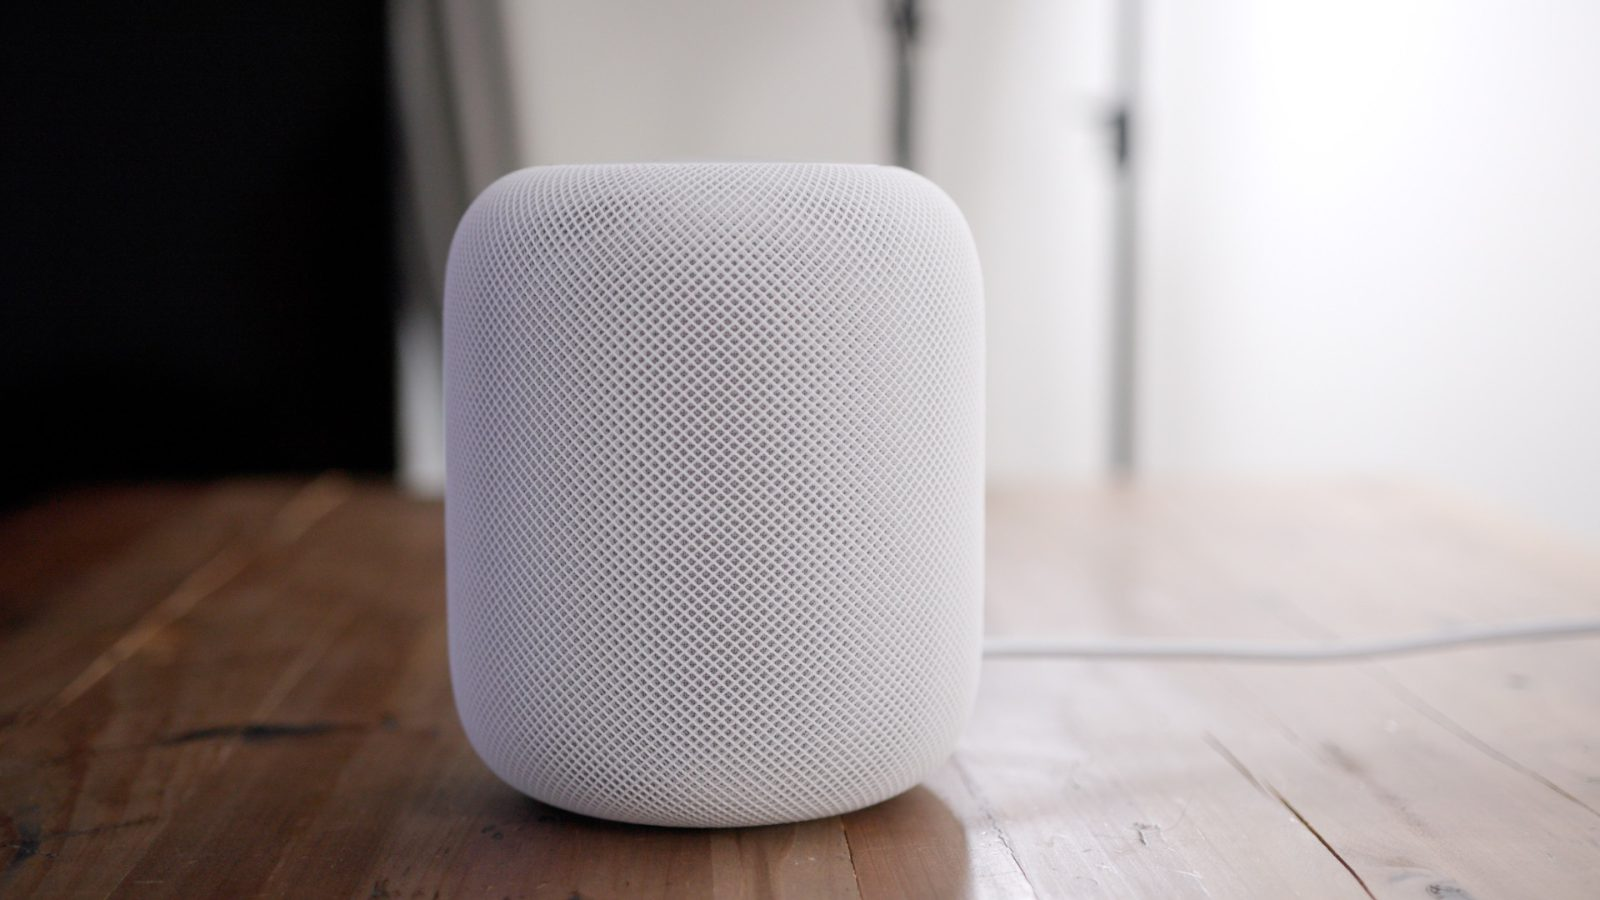 As HomePod proves divisive, what smart speaker do you think sounds best? [Poll] as-homepod-proves-divisive-what-smart-speaker-do-you-think-sounds-best-poll